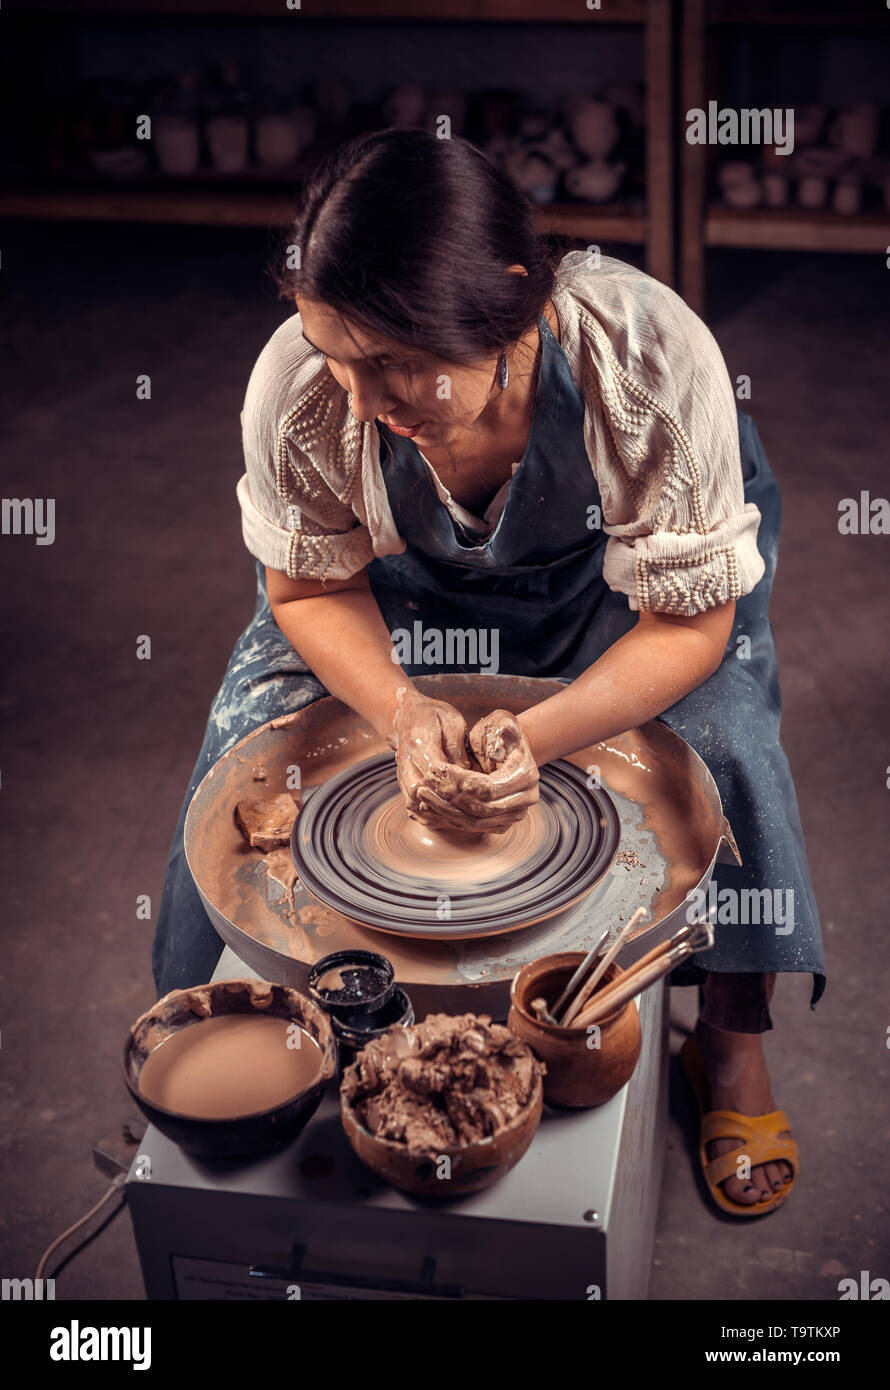 Charming artisan girl sculptor works with clay on a Potter's wheel and at the table with the tools. Handicraft industry. - Stock Image